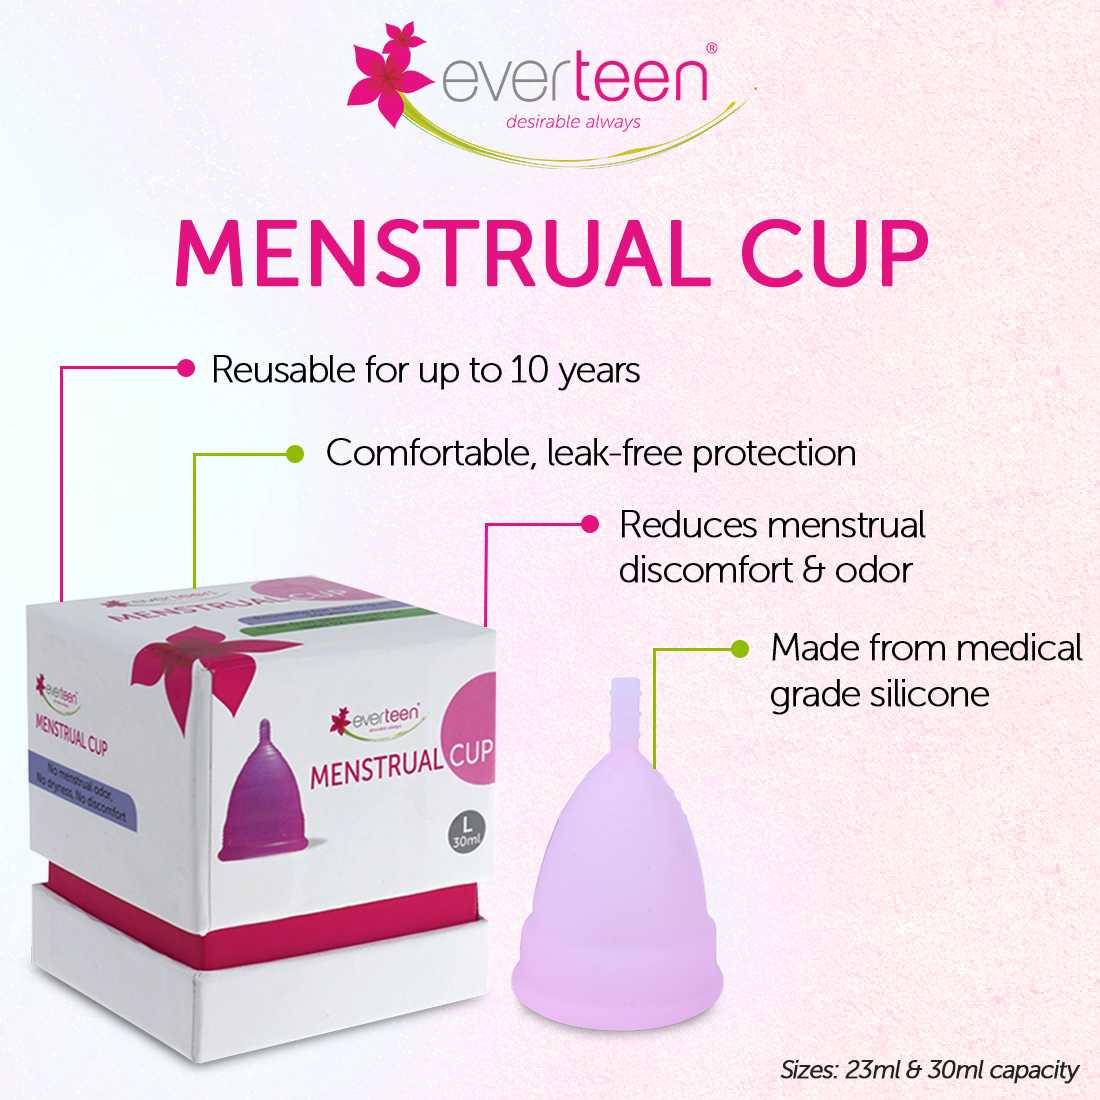 everteen Large Menstrual Cup for Periods in Women - 1 Pack (30ml capacity)